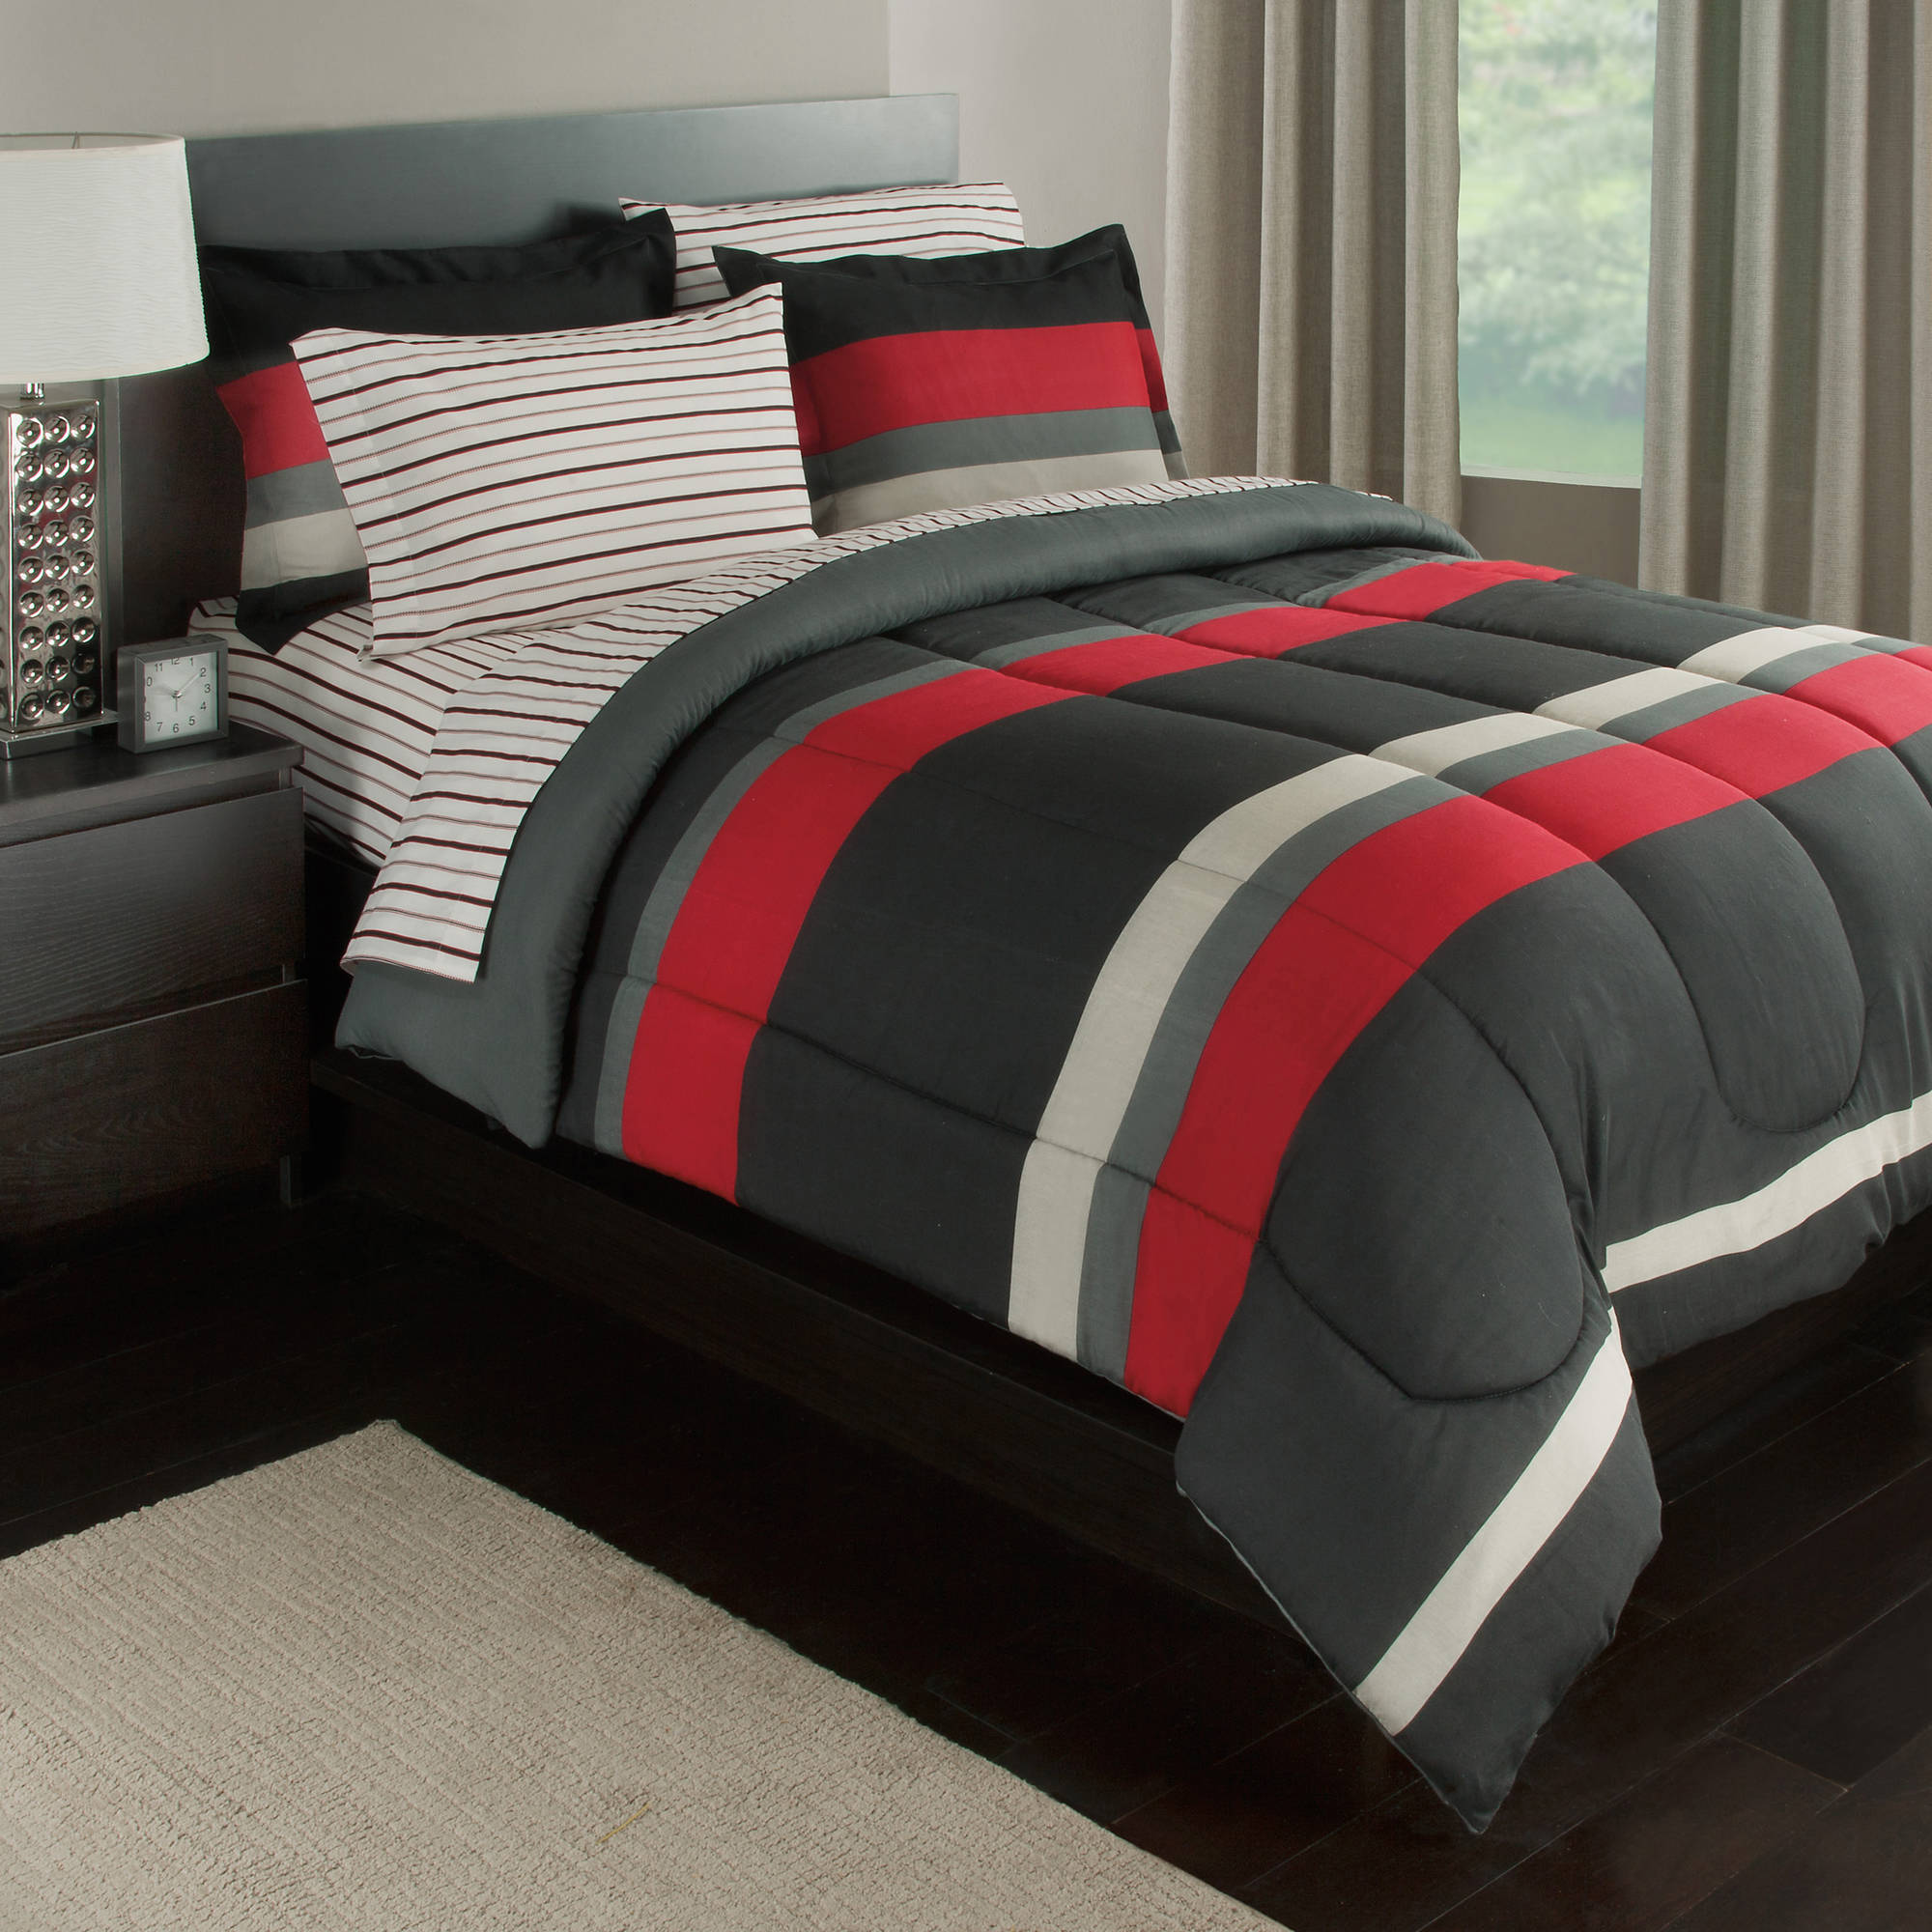 rugby stripe reversible bed-in-a-bag bedding set available in